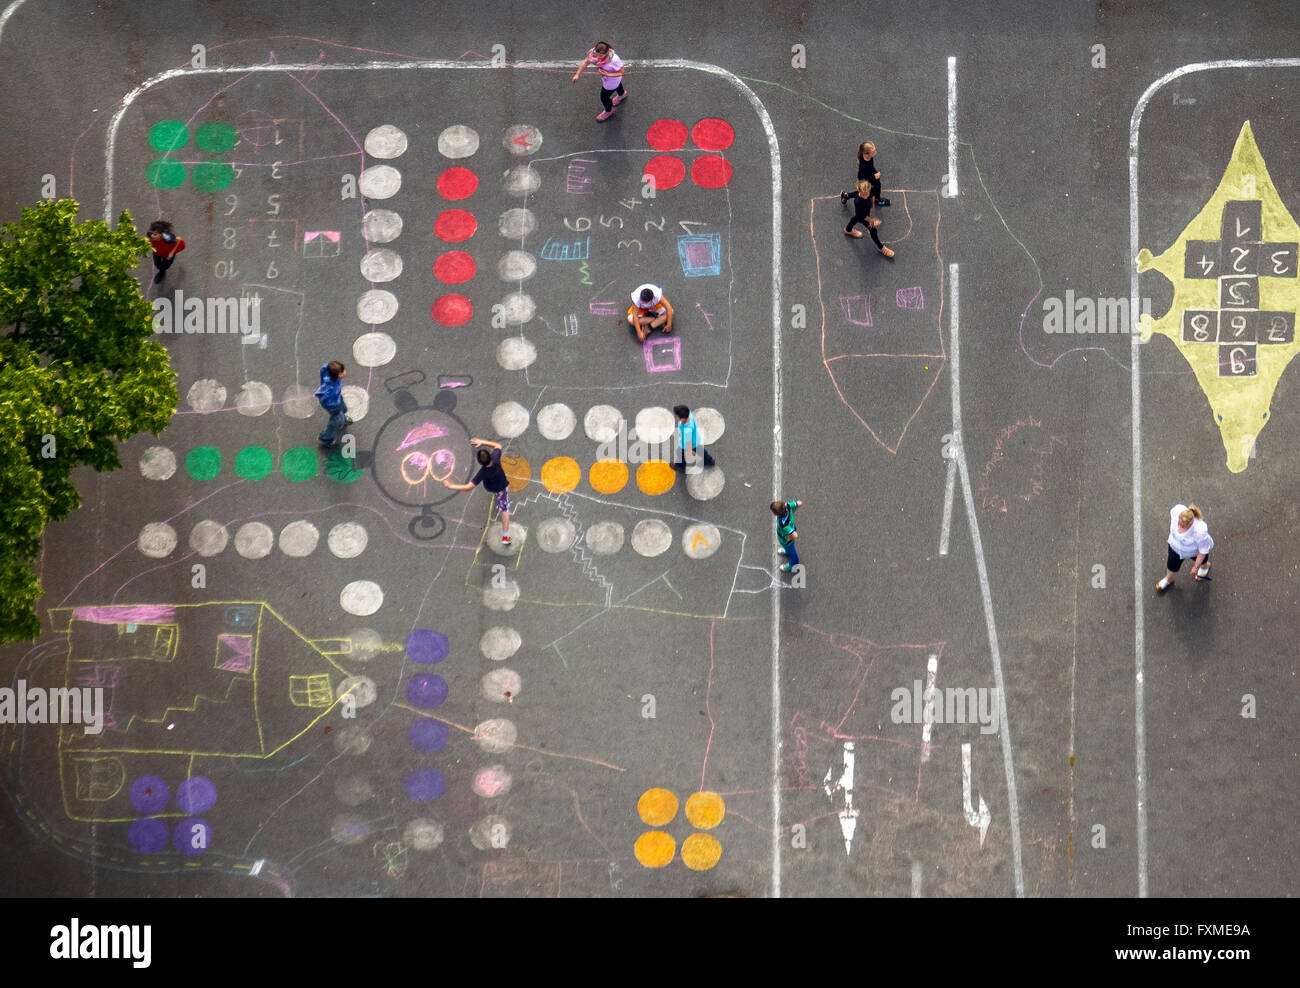 Aerial view, playground of the Theodor-Heuss-Schule, game: 'parchesi you-not' Headache is a board game - Stock Image